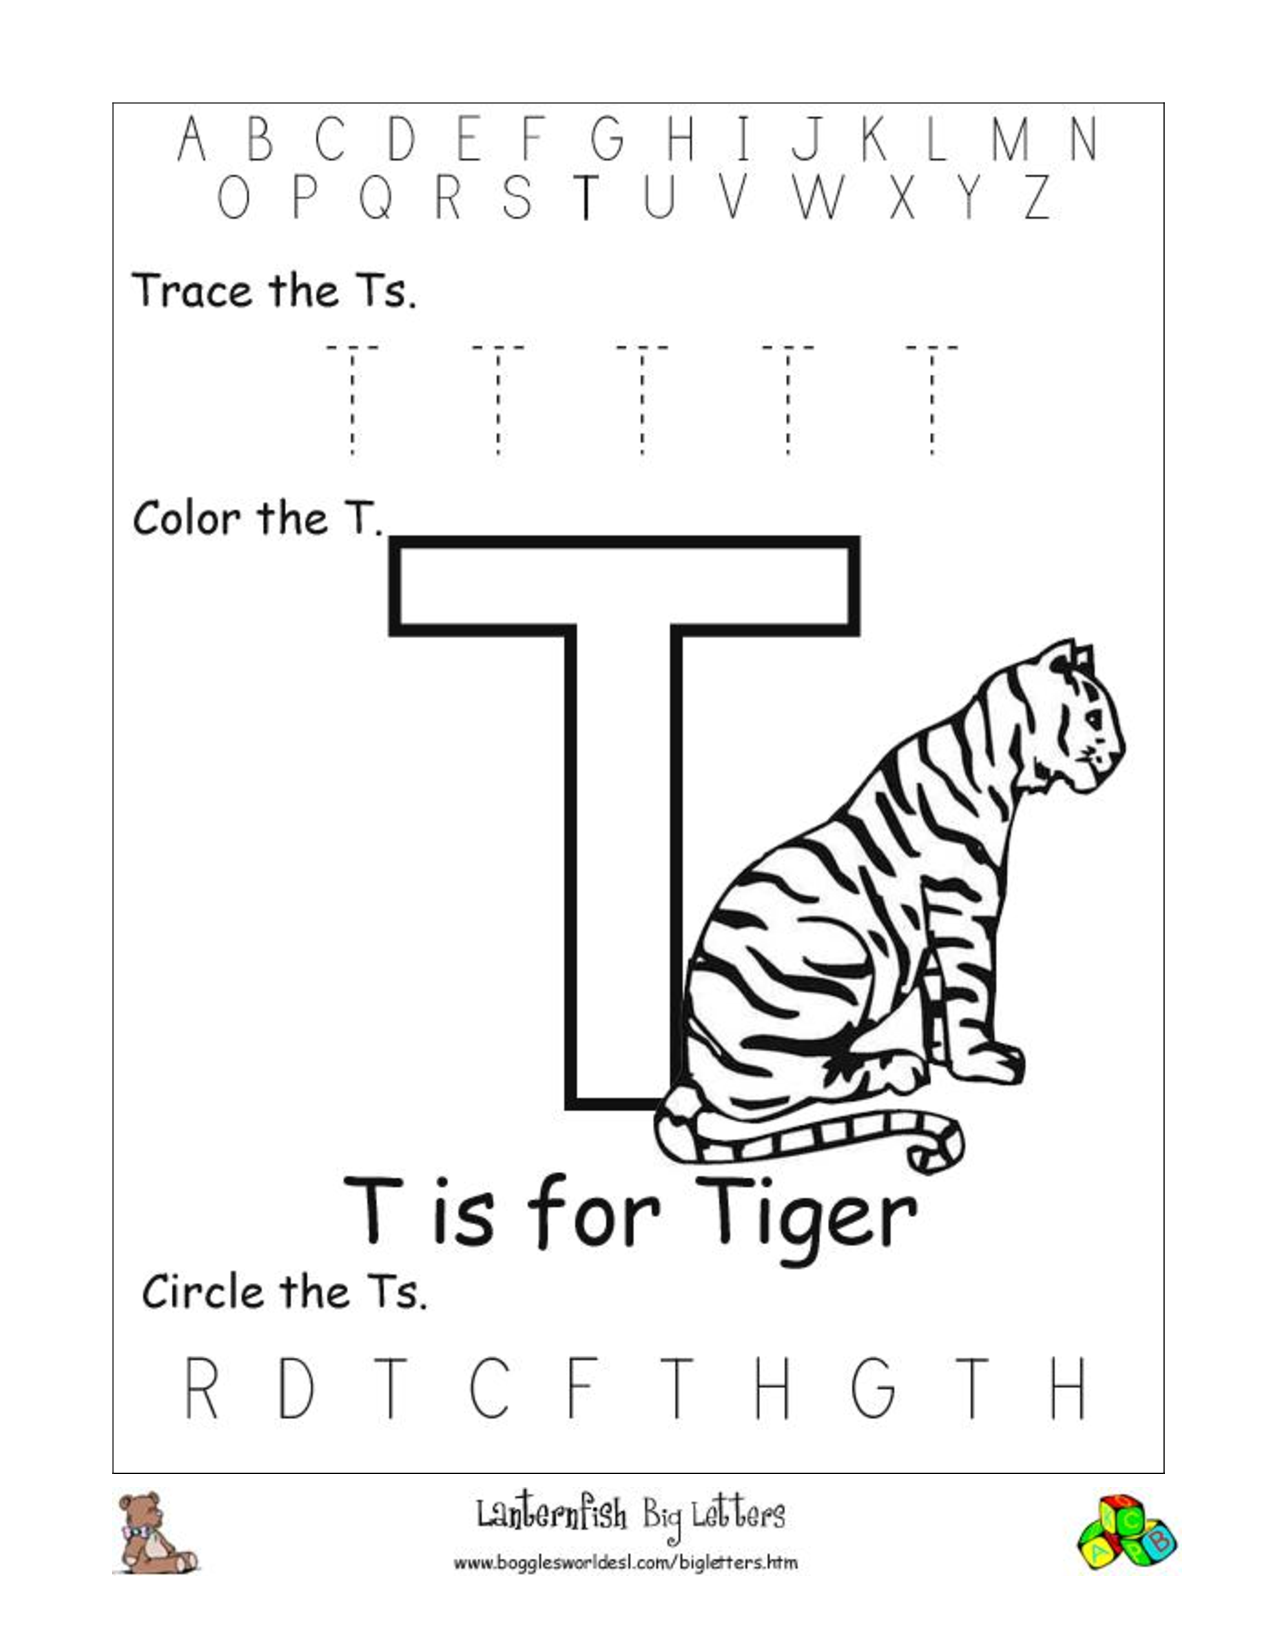 alphabet worksheets for preschoolers alphabet worksheet big letter t download now doc doc. Black Bedroom Furniture Sets. Home Design Ideas